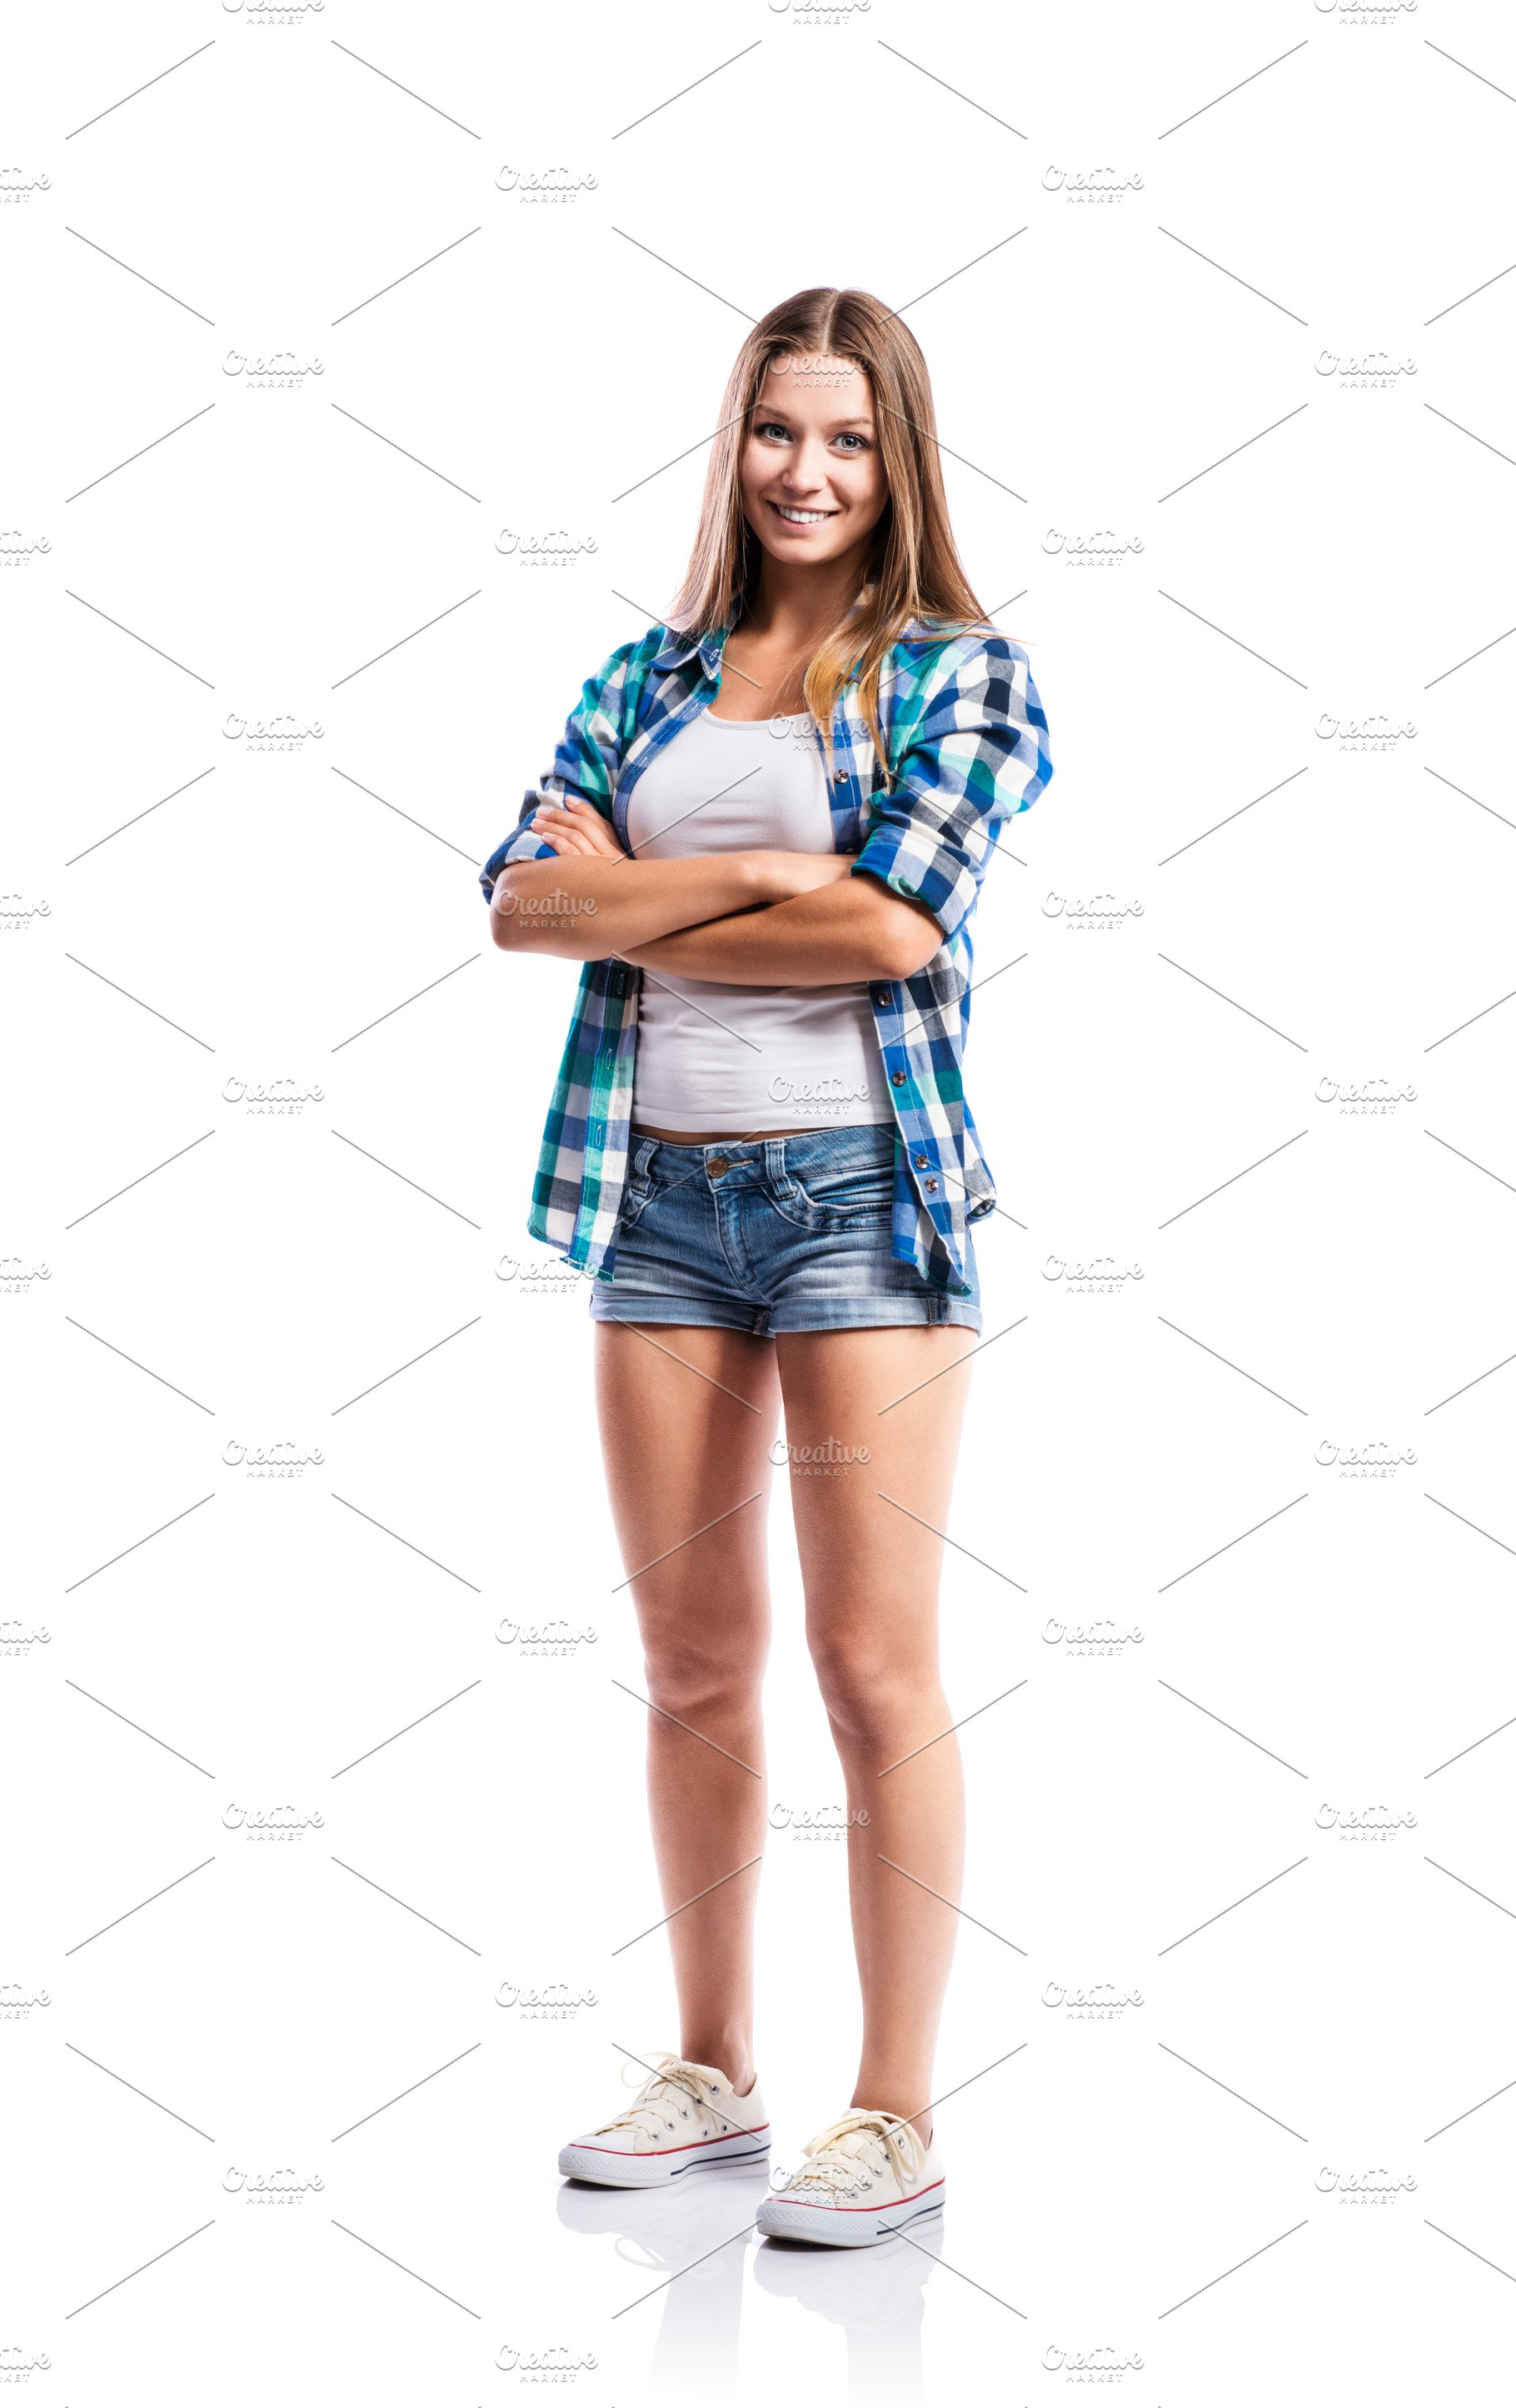 Girl In Shorts And Checked Shirt Arms Crossed Isolated